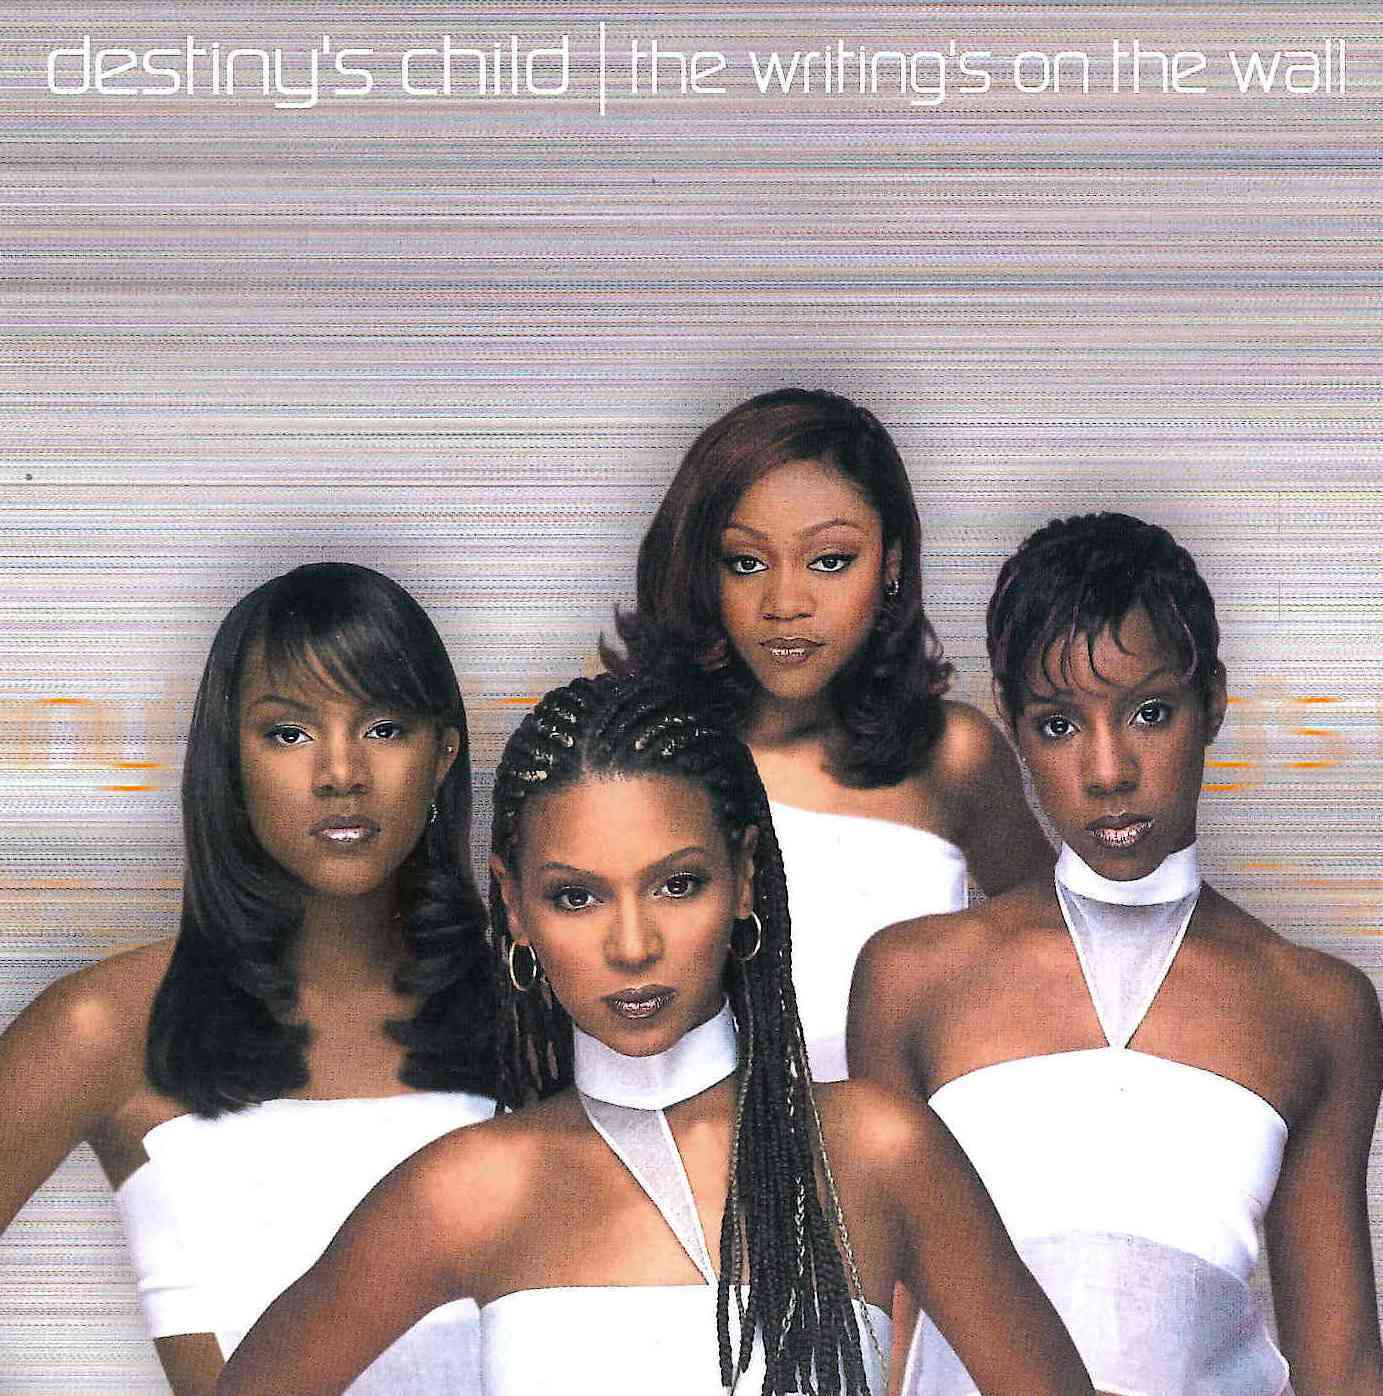 Destiny's Child - Writings on The Wall